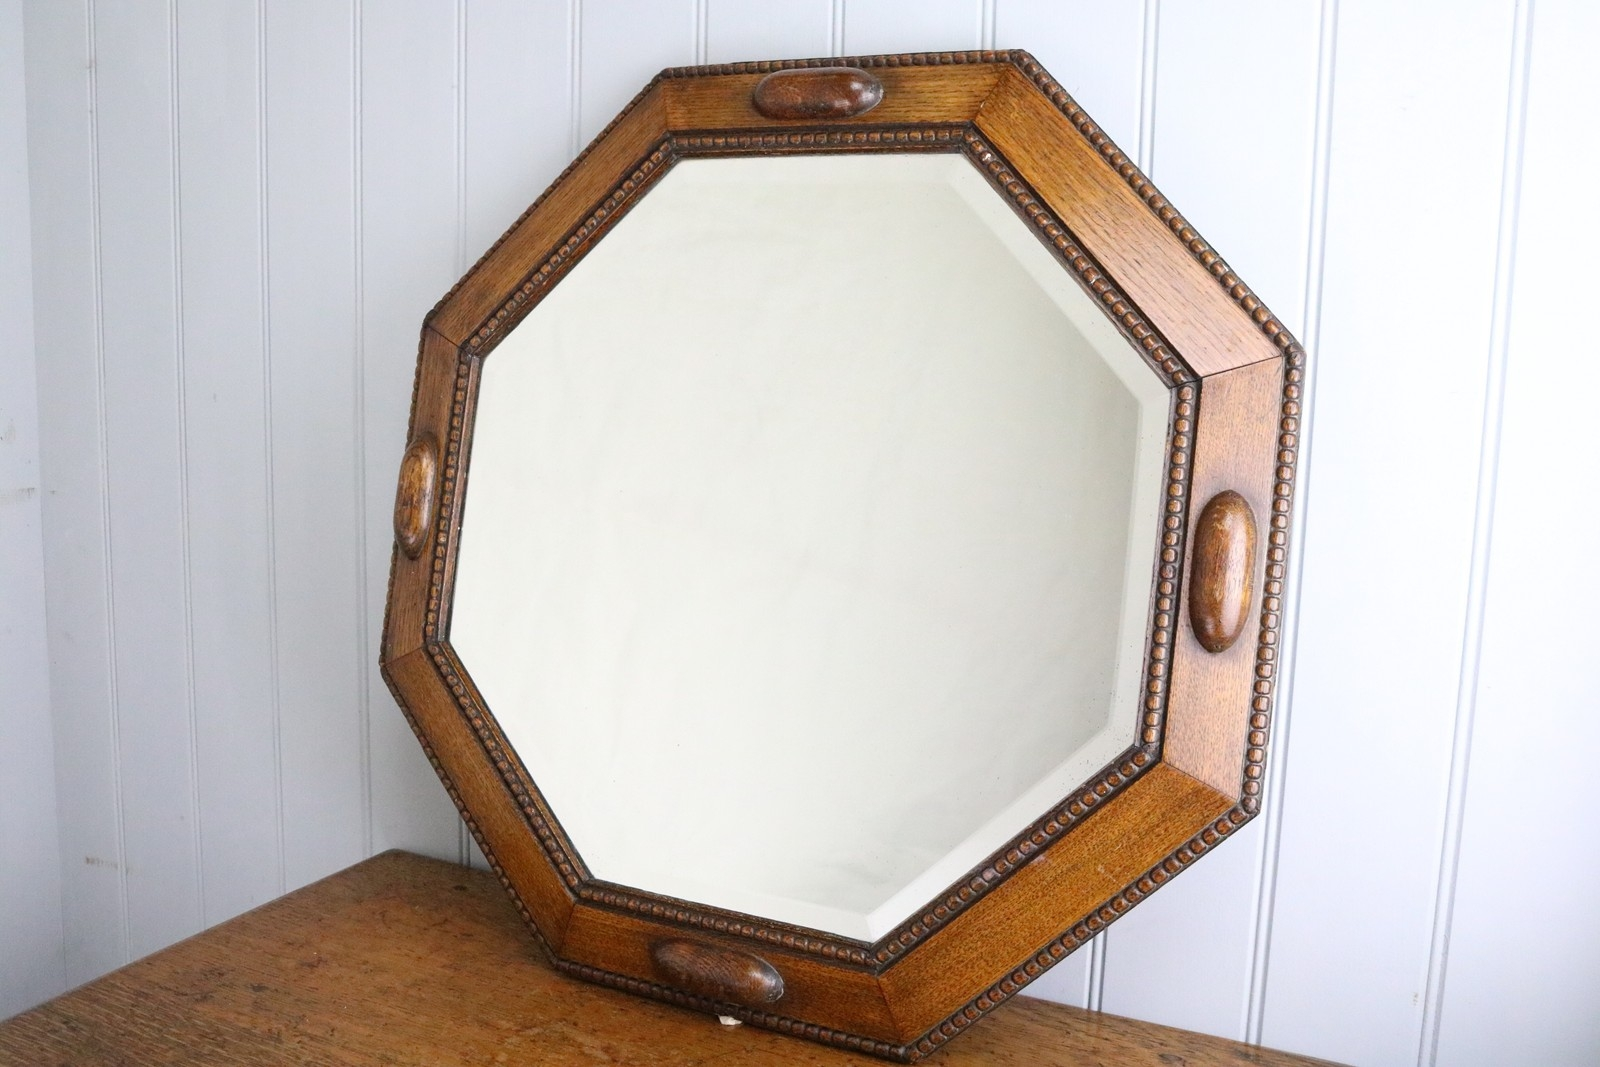 Octagonal Oak Framed Wall Mirror Circa 1930 The Hoarde Throughout Oak Framed Wall Mirrors (Image 9 of 15)